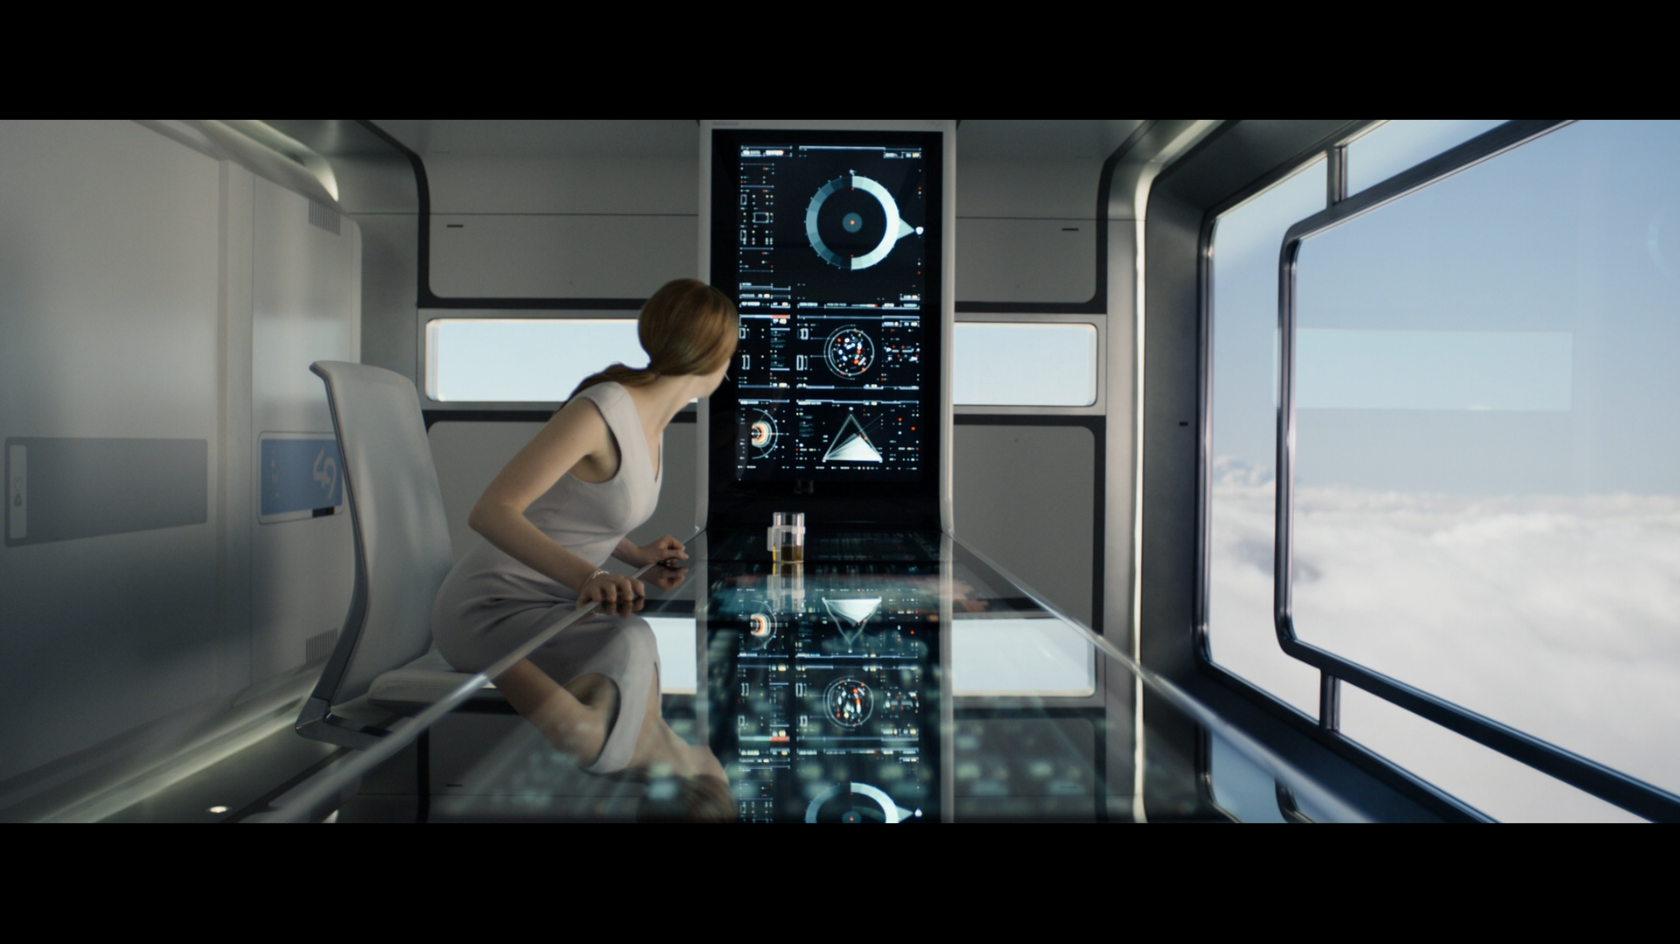 Victoria from the movie Oblivion seated at a large touch-based interface